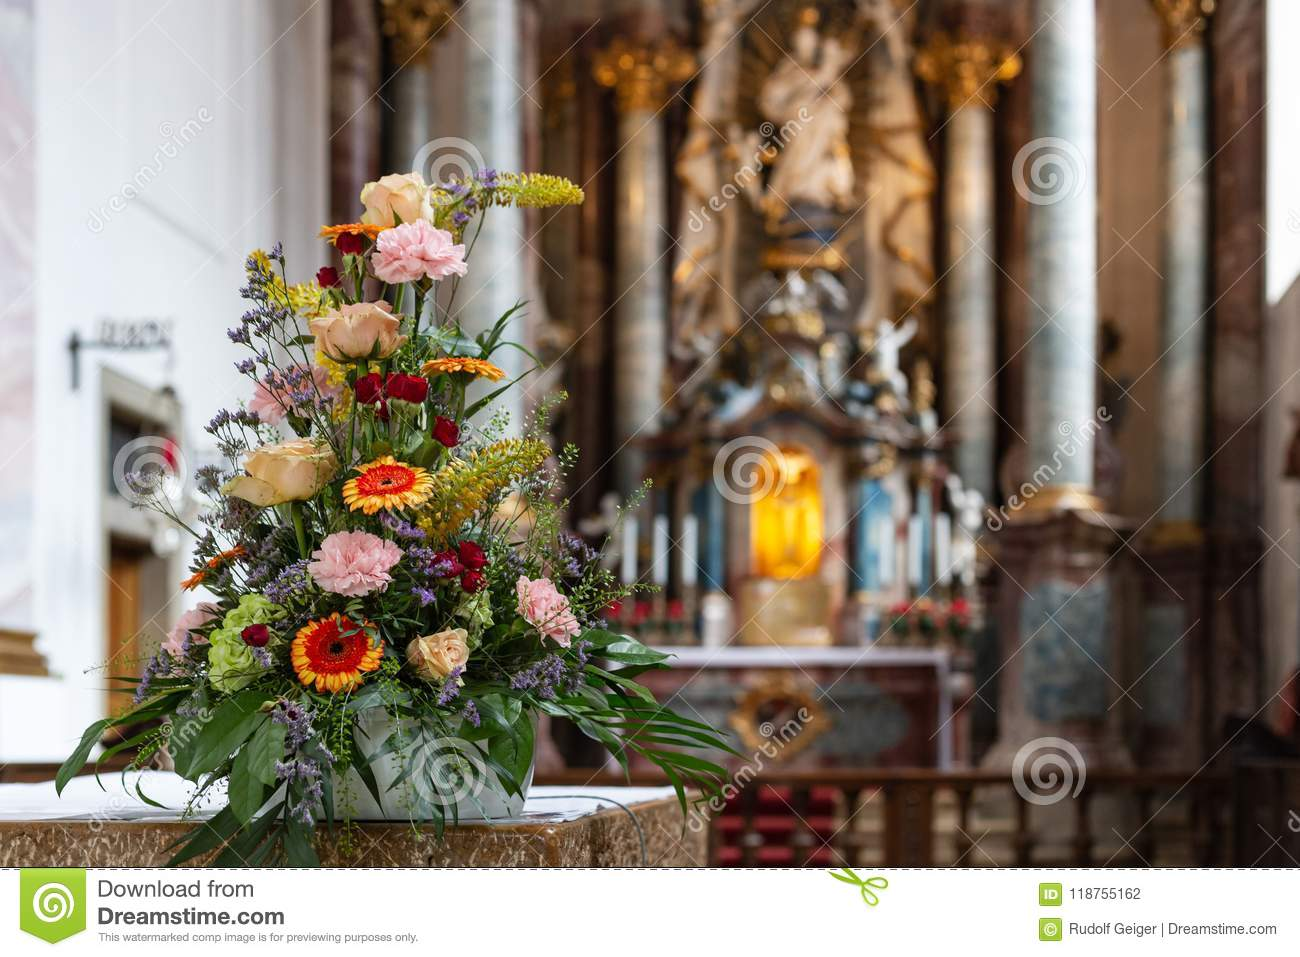 Flower Bouquet In Church Altar Stock Photo Image Of Colorful Celebration 118755162